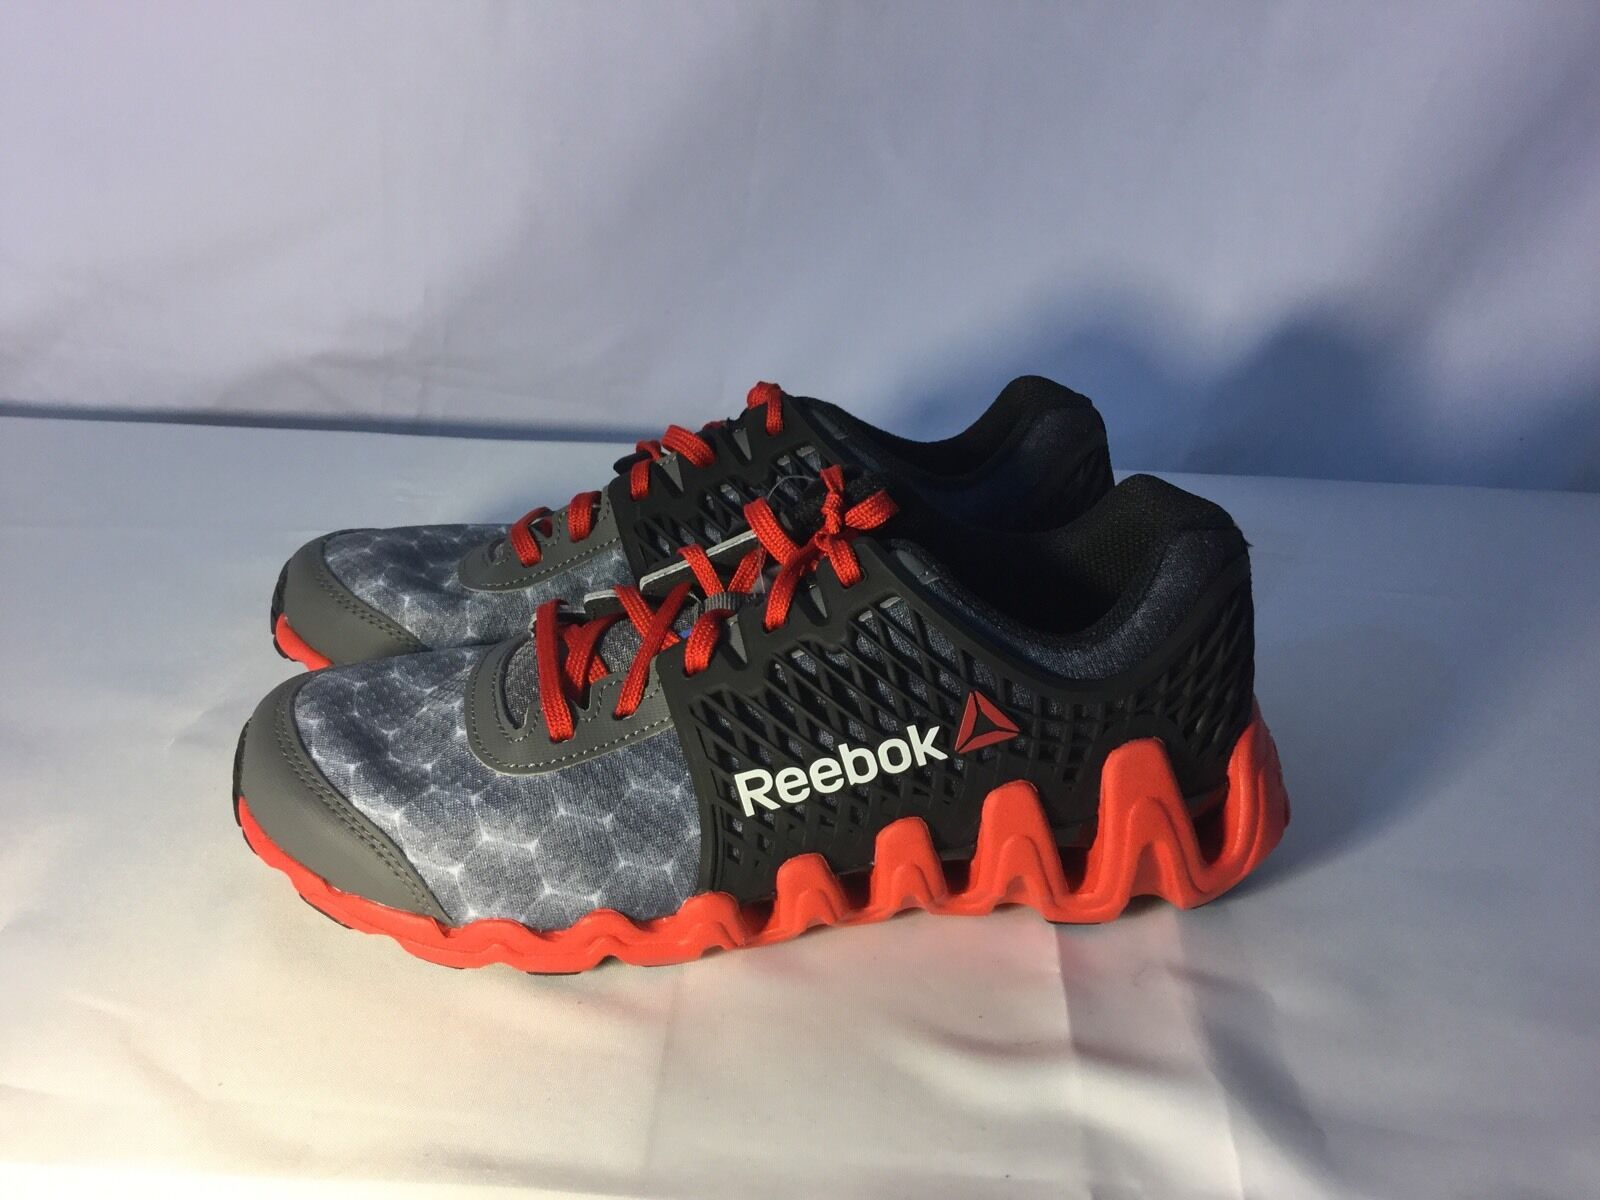 New Reebok ZigTech Black/Red Running Shoes - Men's Size 6 89.99